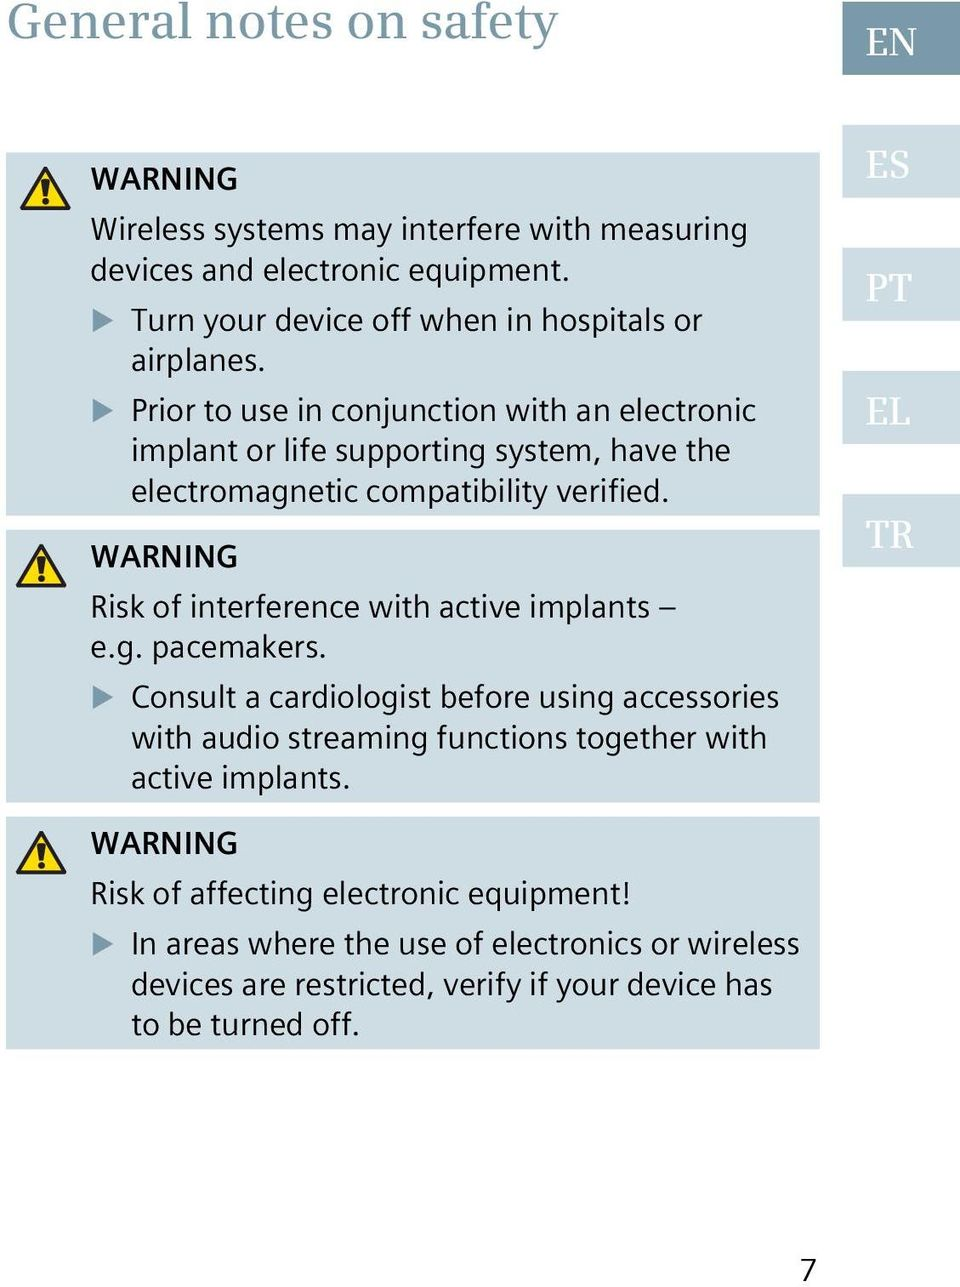 Prior to use in conjunction with an electronic implant or life supporting system, have the electromagnetic compatibility verified.